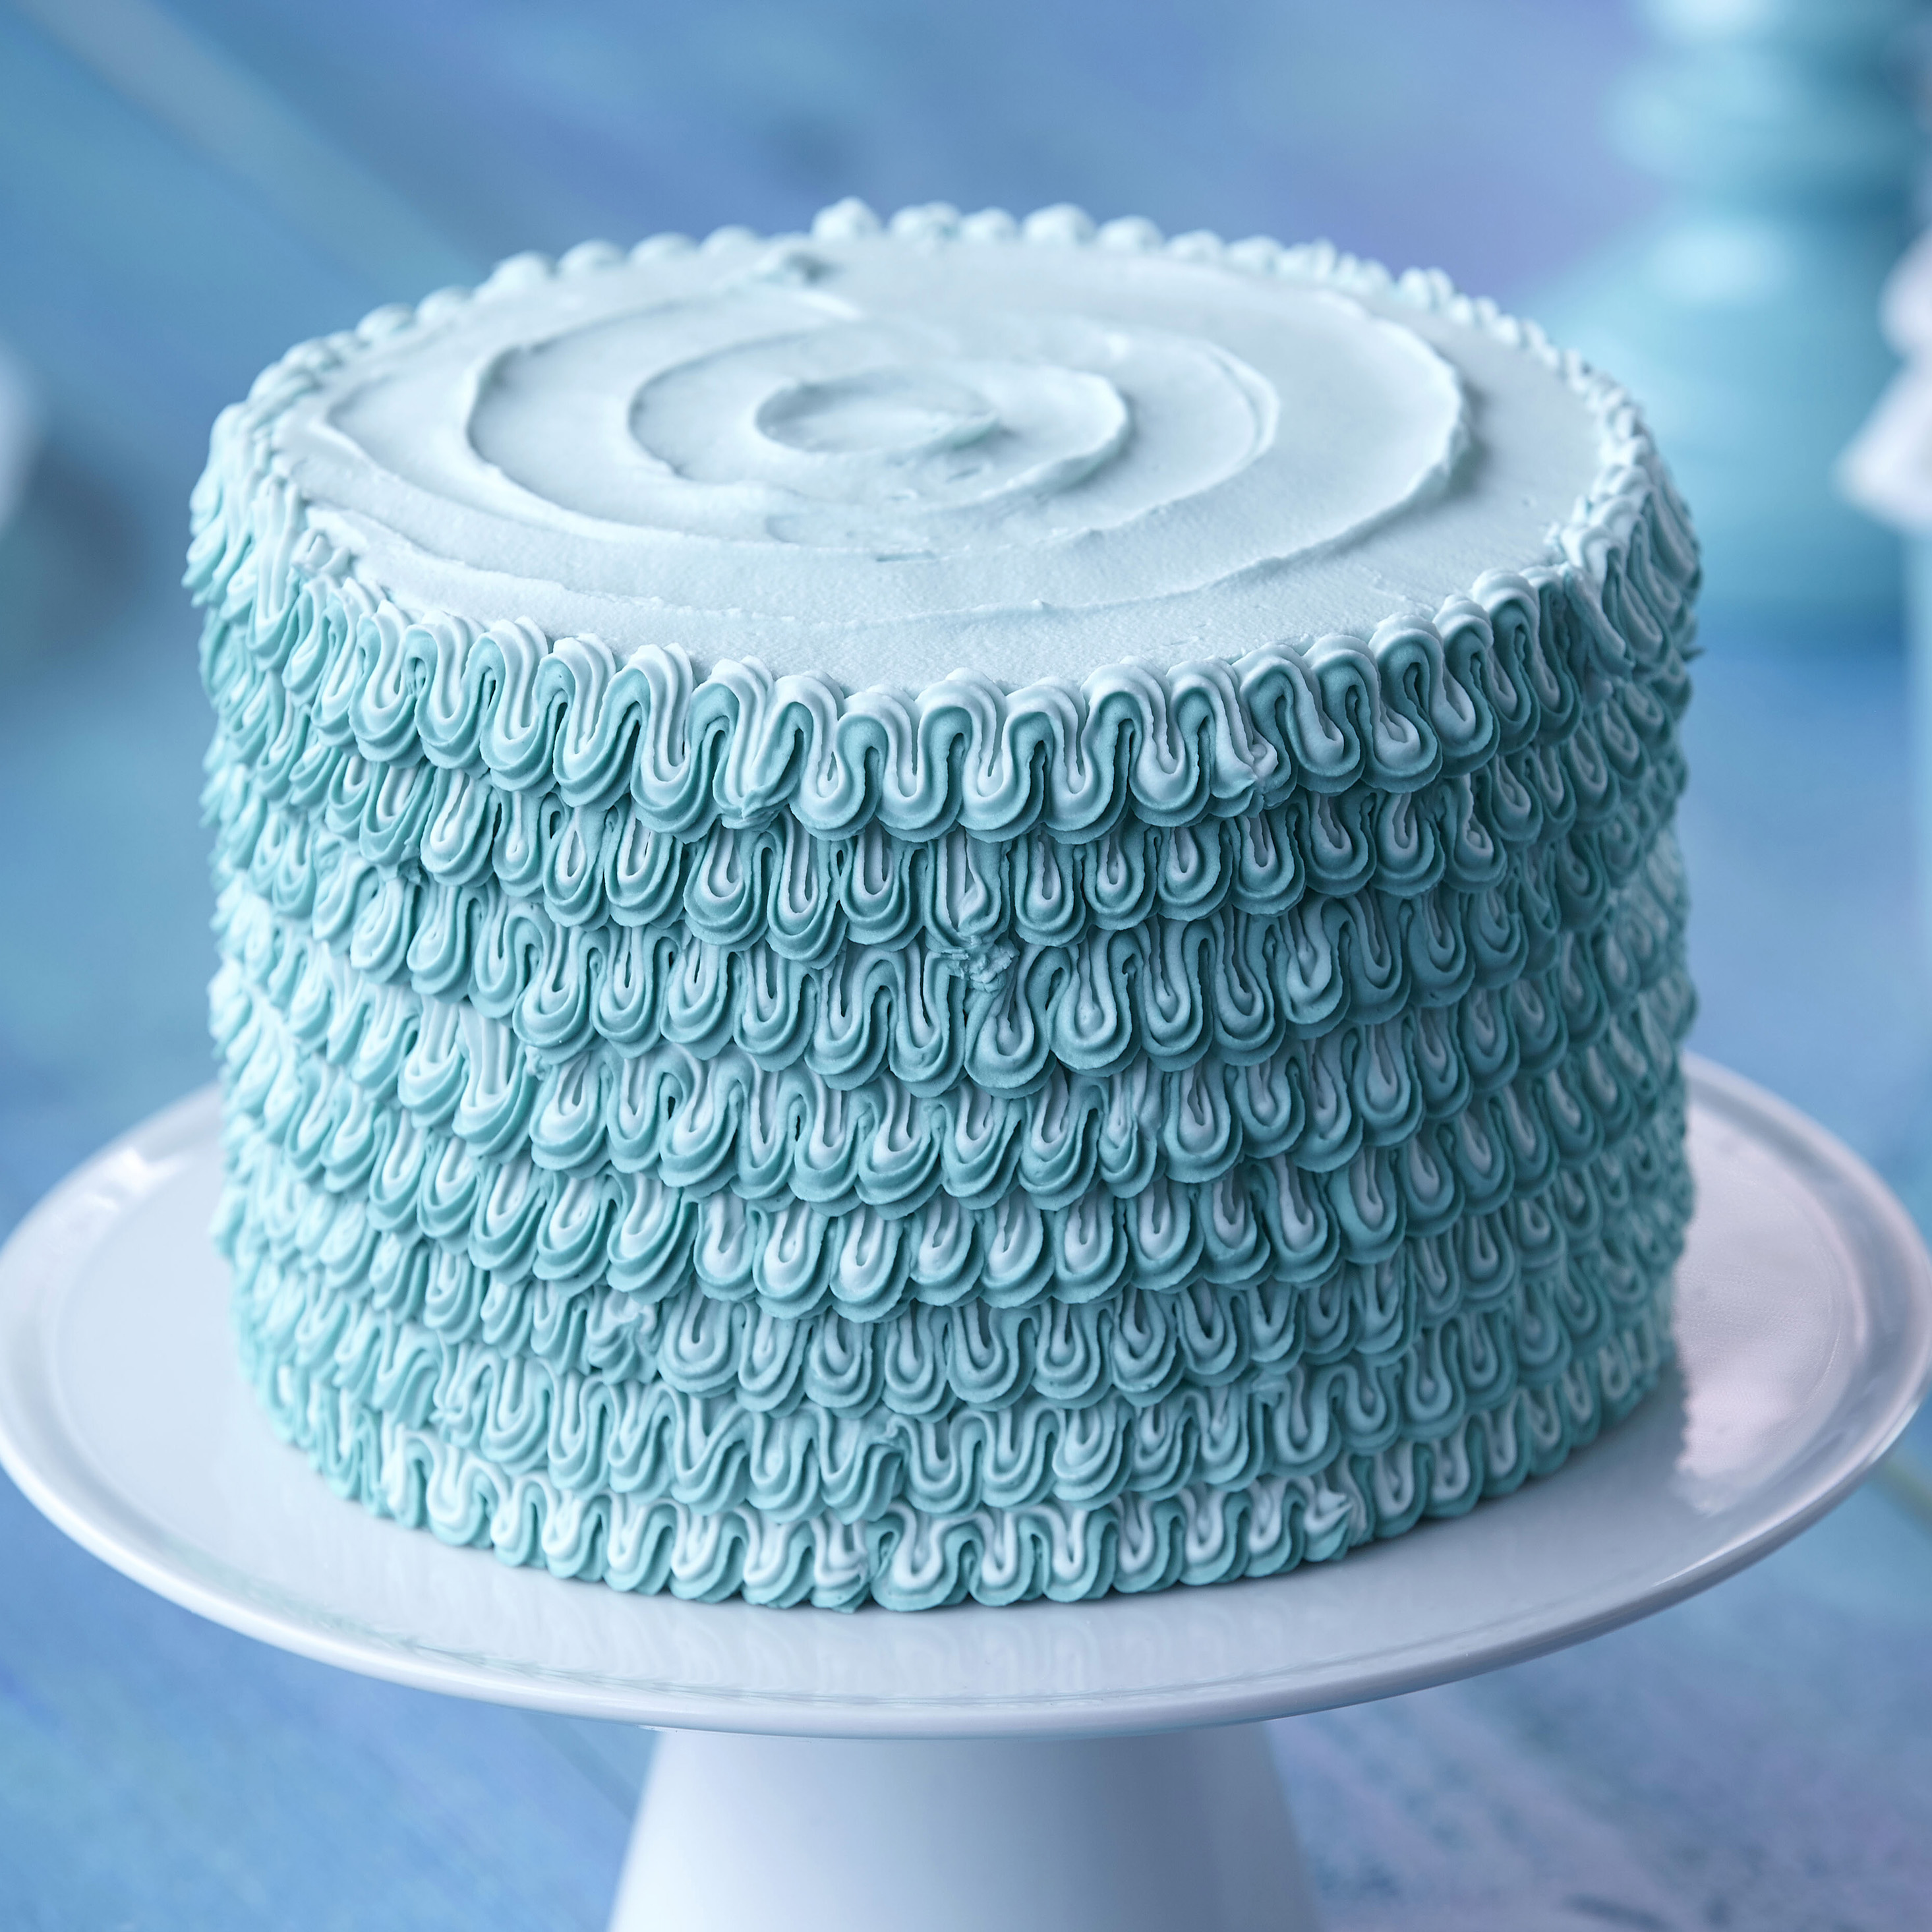 Learn to decorate a cake with a Wilton Method Class?